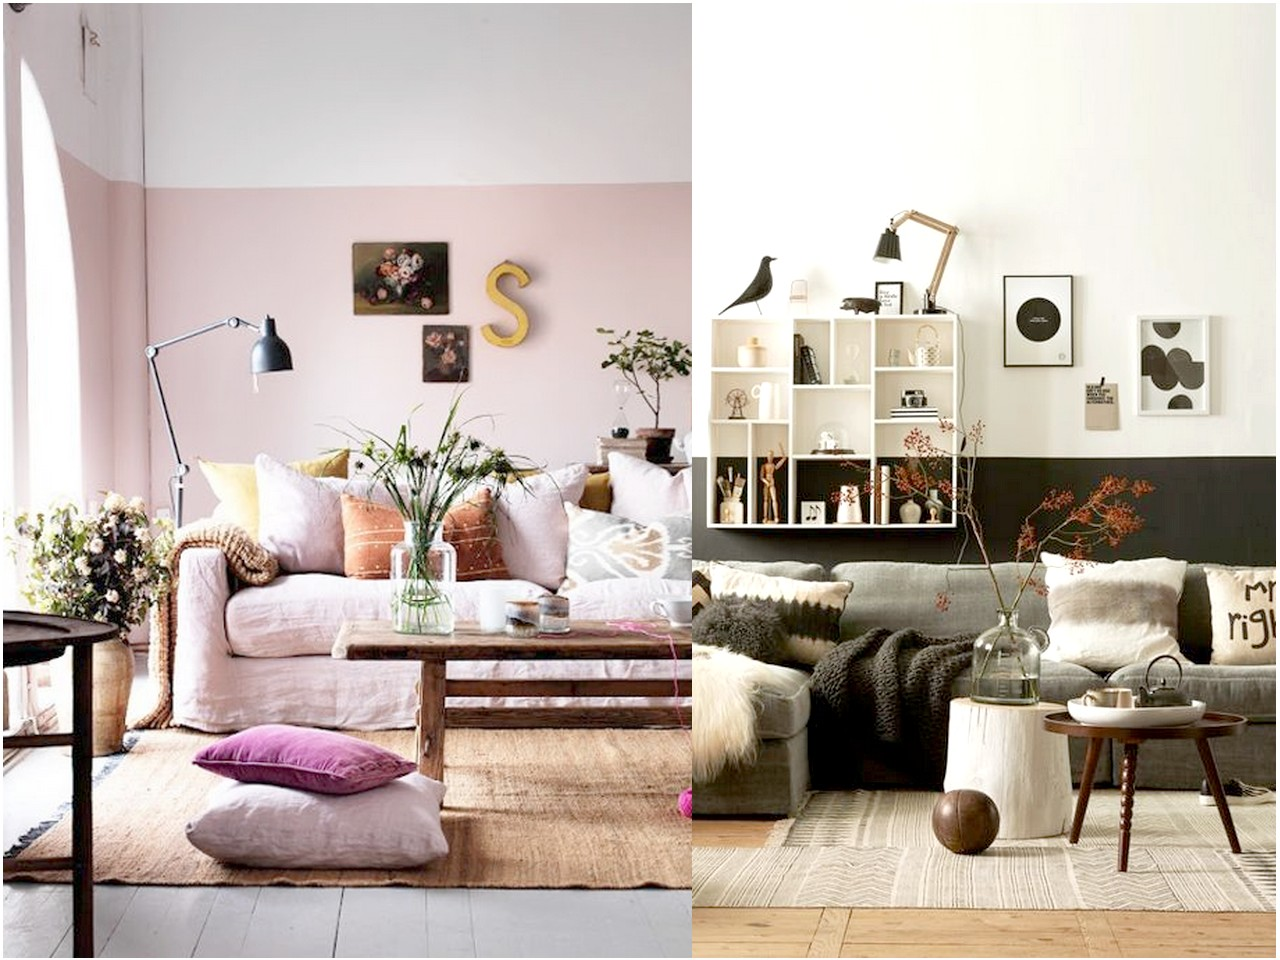 7 ideas para decorar con poco dinero el sal n de tu casa for Decorar pared grande salon